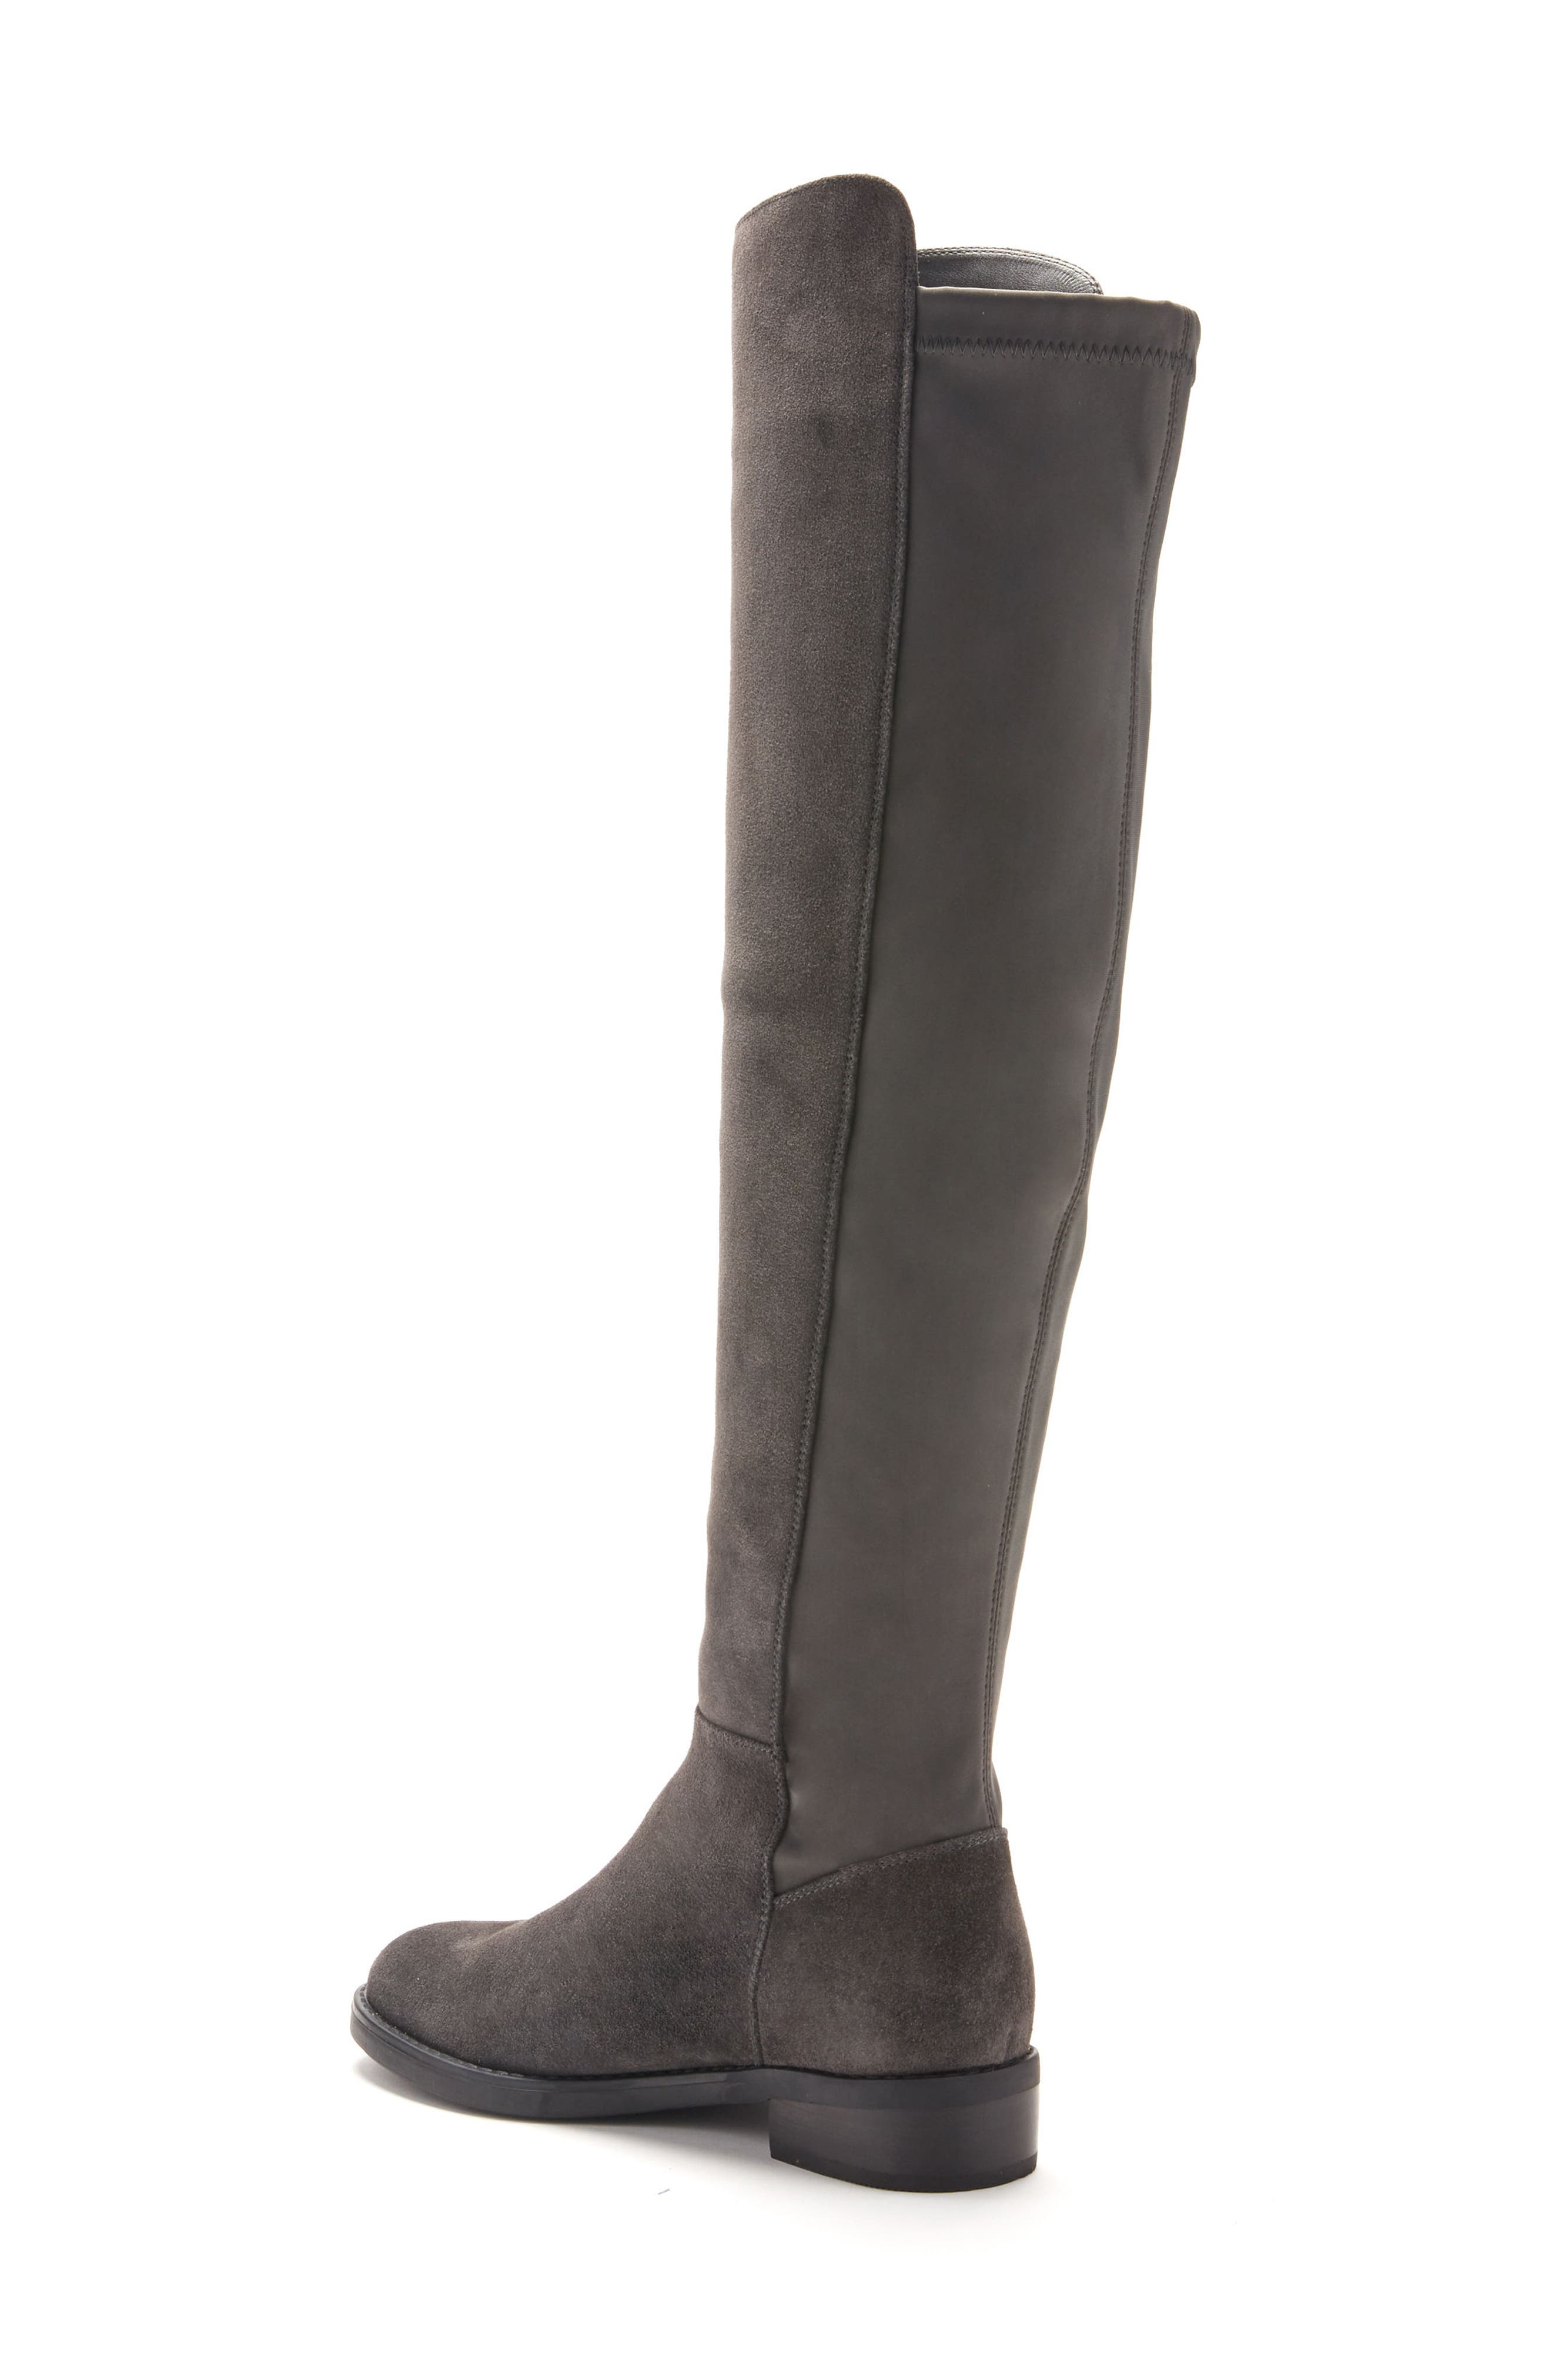 Olivia Knee High Boot,                             Alternate thumbnail 2, color,                             Grey Suede